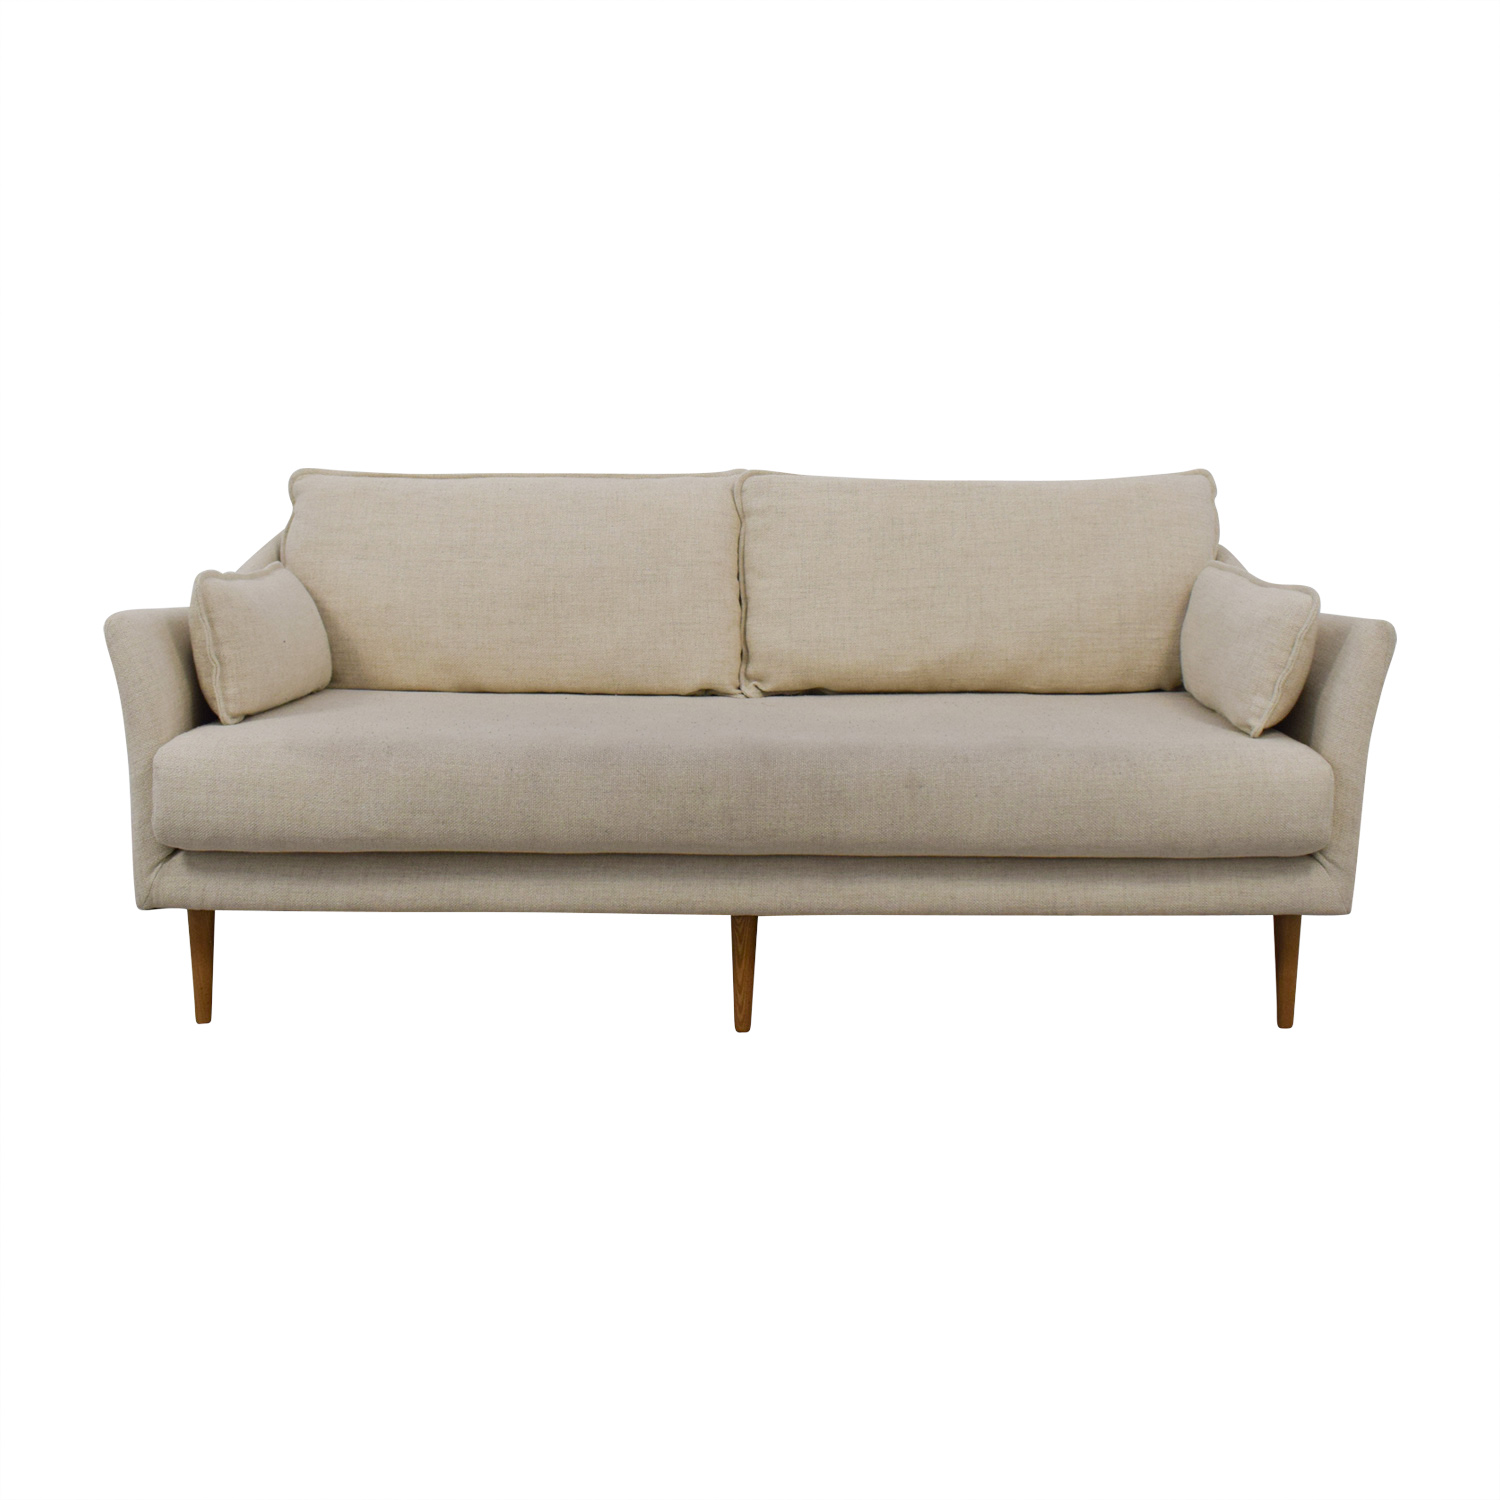 West Elm Antwerp Sofa / Classic Sofas